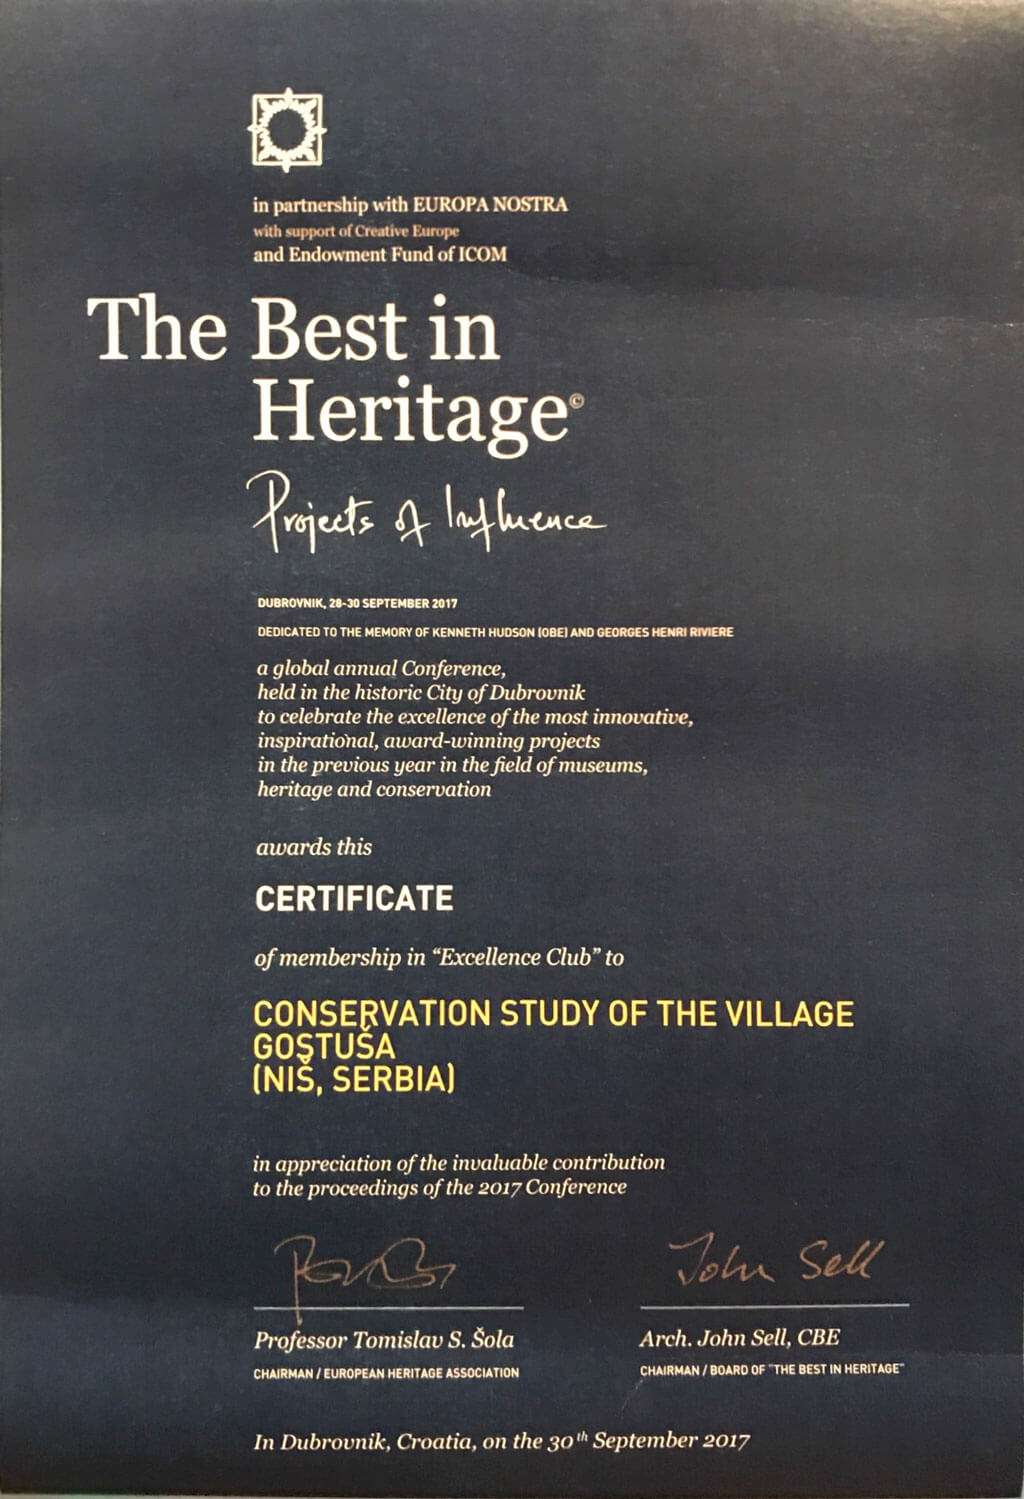 The best in Heritage 2017